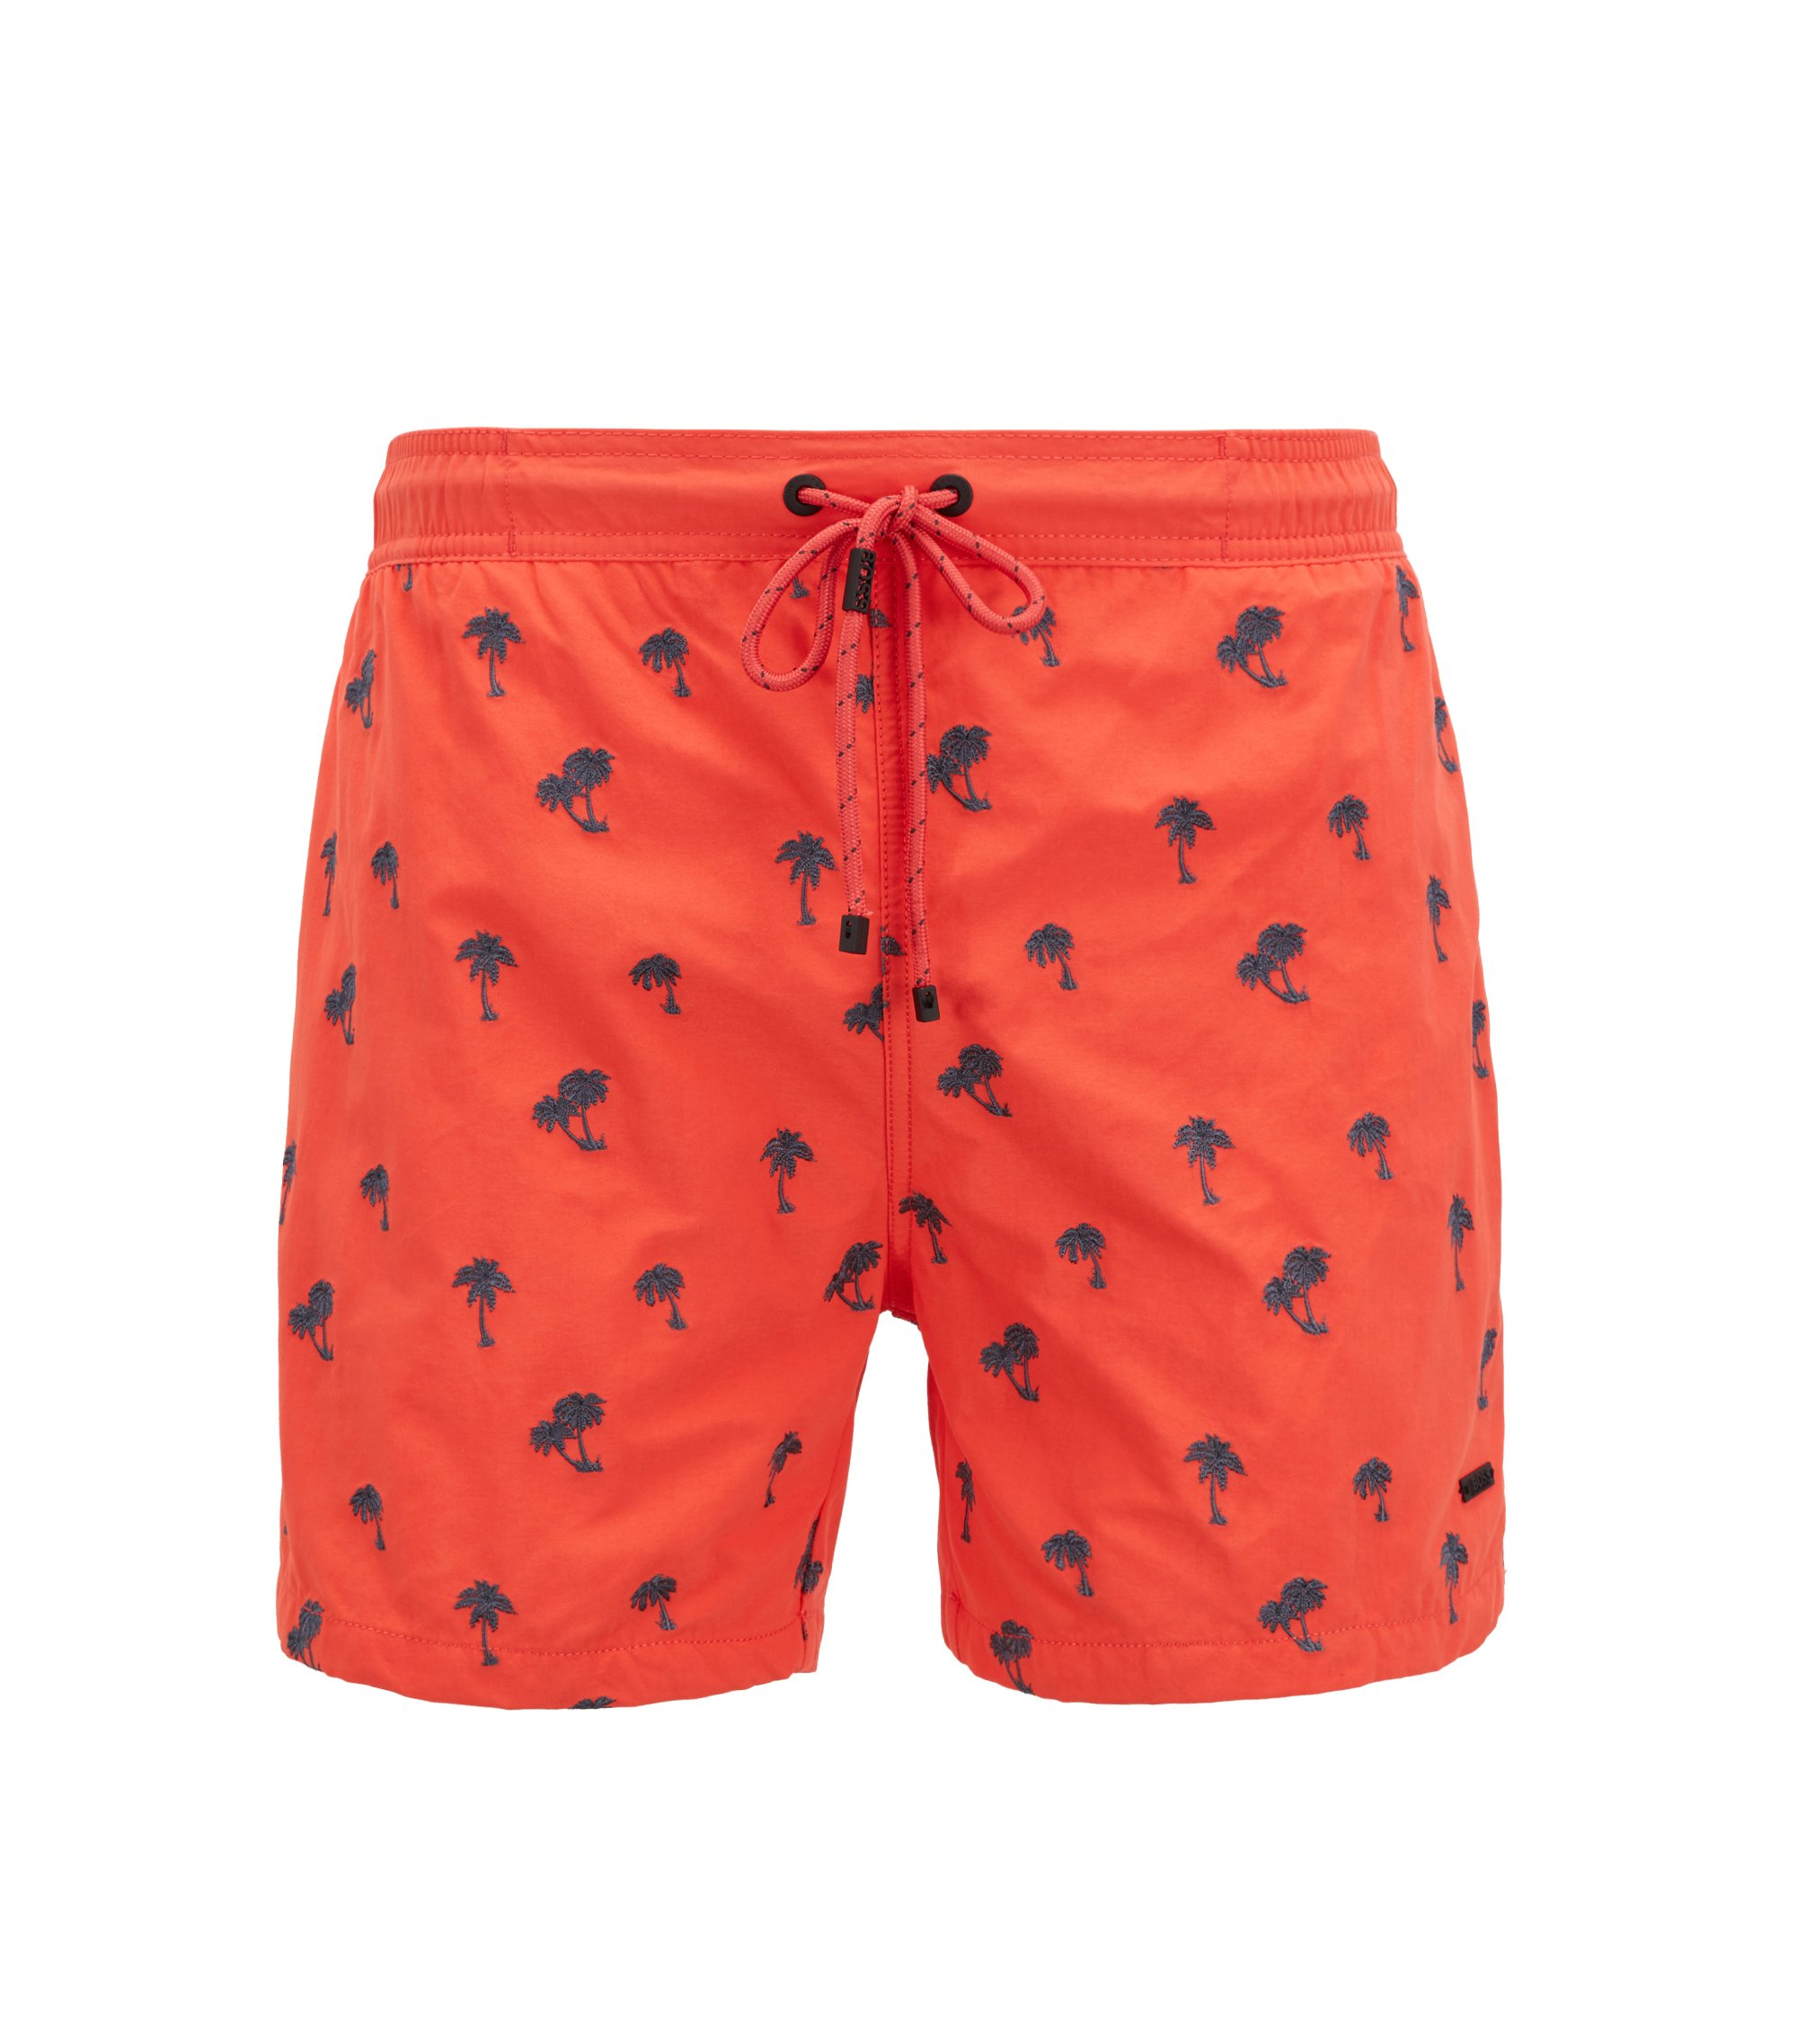 Shark-embroidered swim shorts with drawstring waist, Open Red